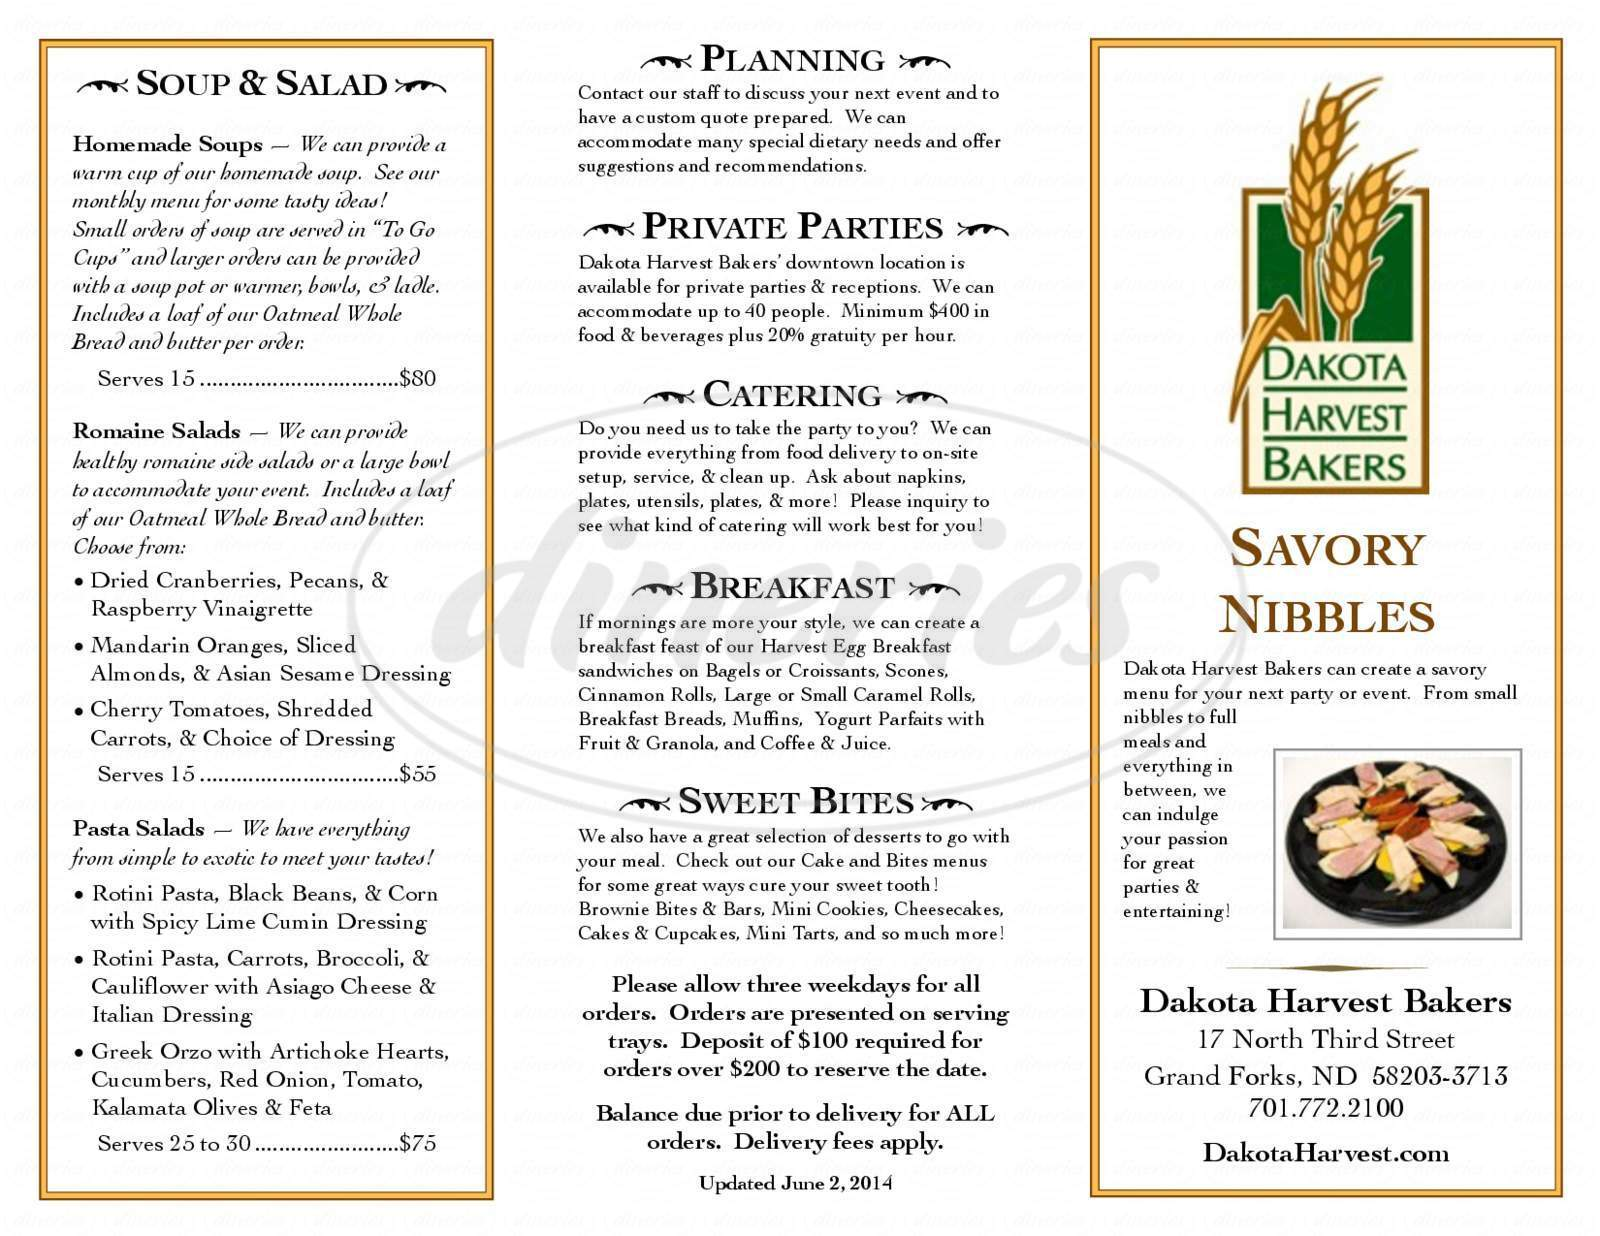 menu for Dakota Harvest Bakers